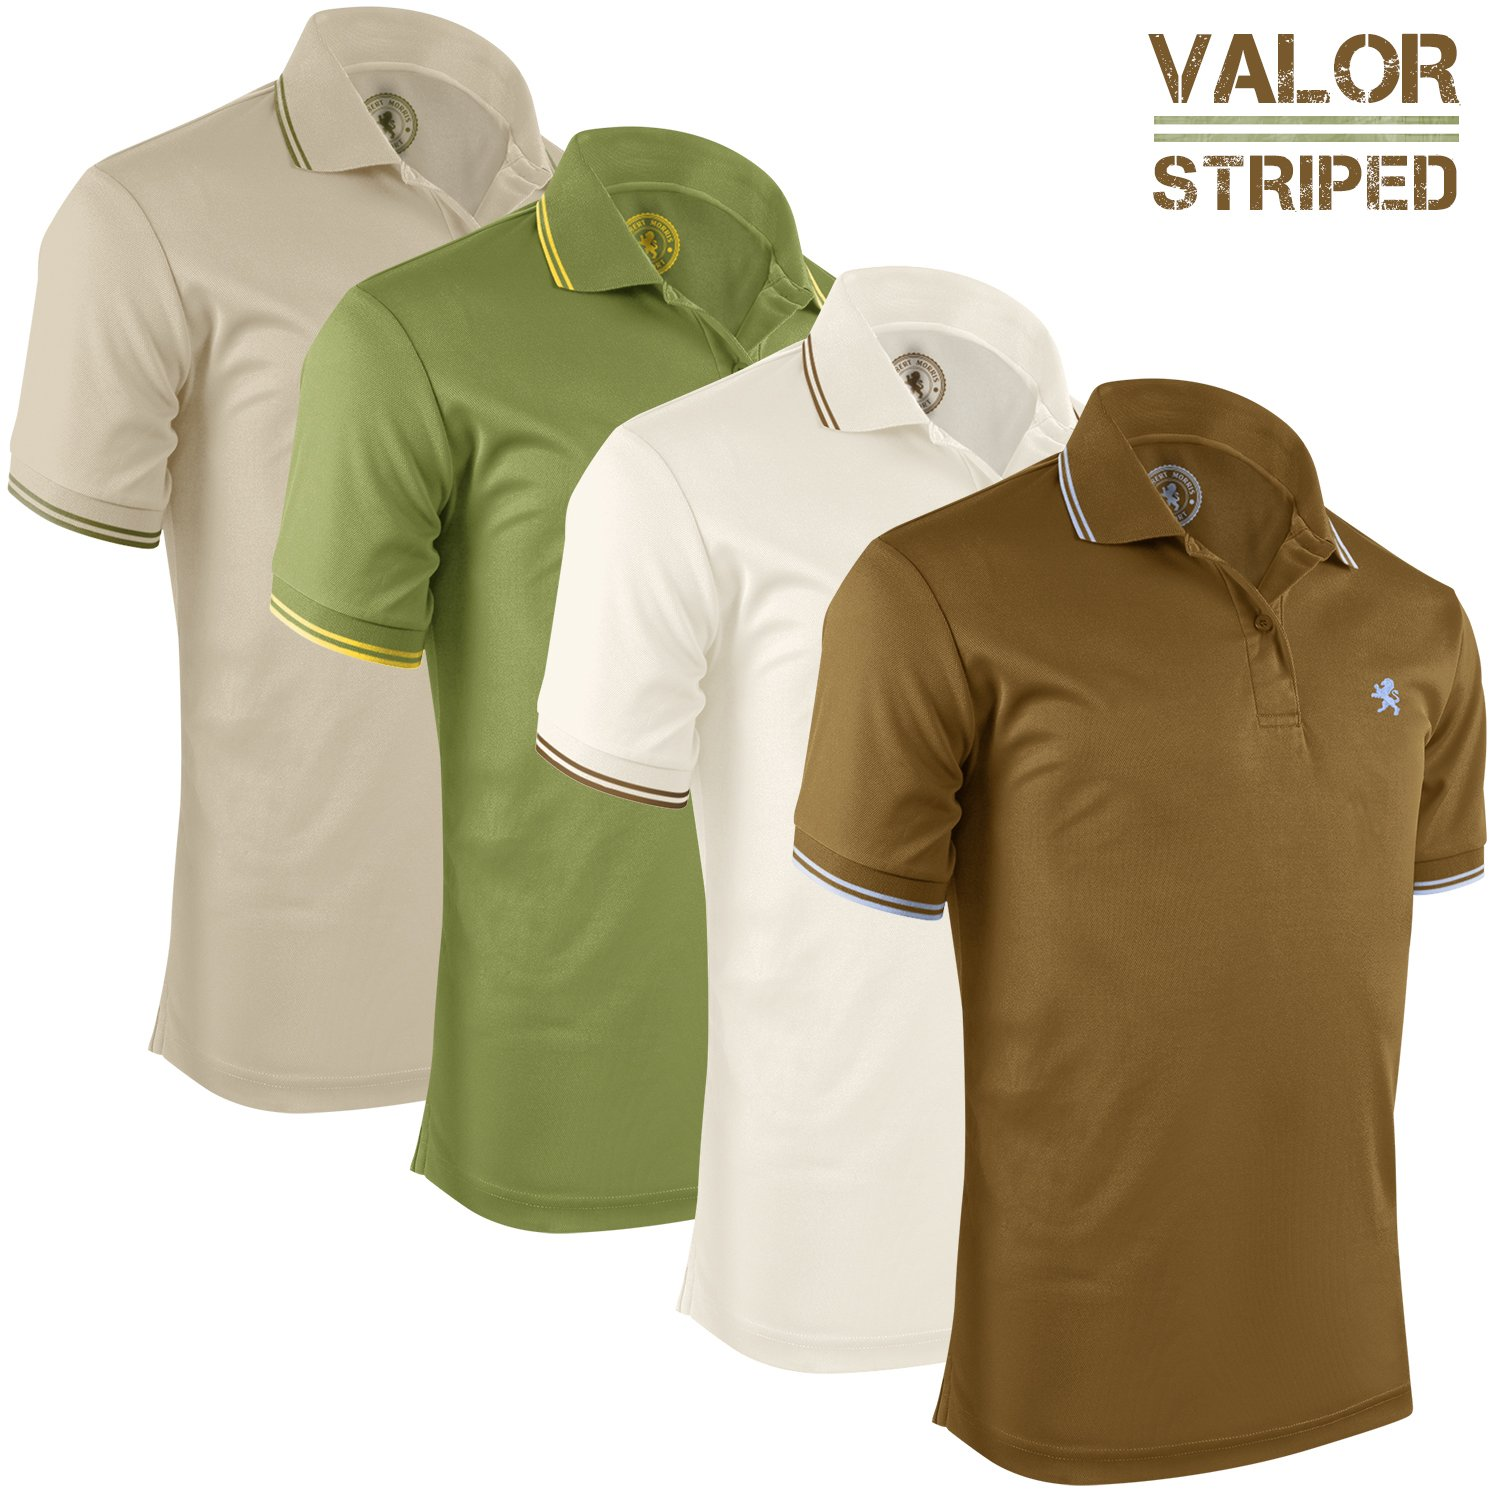 135757a231788 Galleon - Albert Morris Mens Short Sleeve Polo Shirts 4 Pack ...